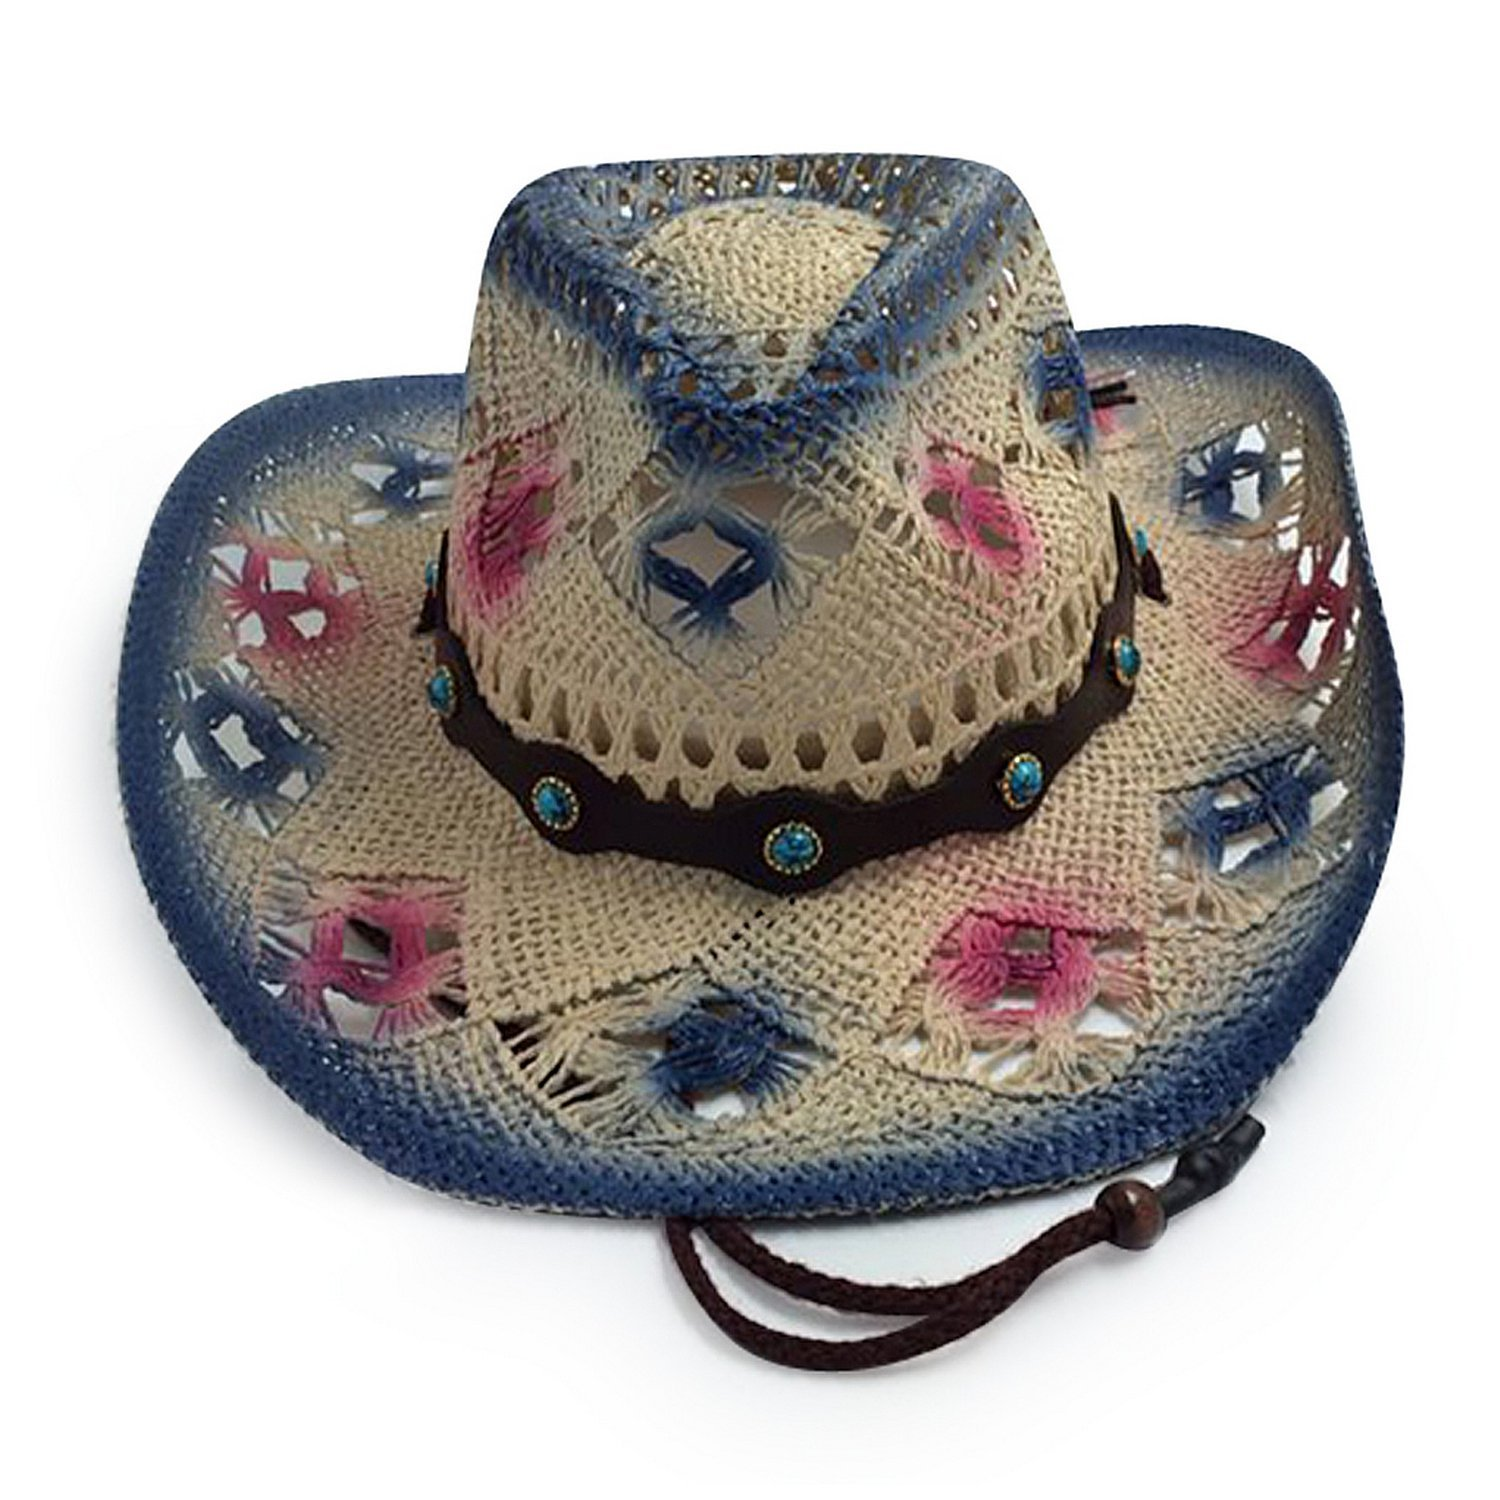 3819e3ffd35 Get Quotations · Old Stone Olivia Women s Cowboy Drifter Style Hat